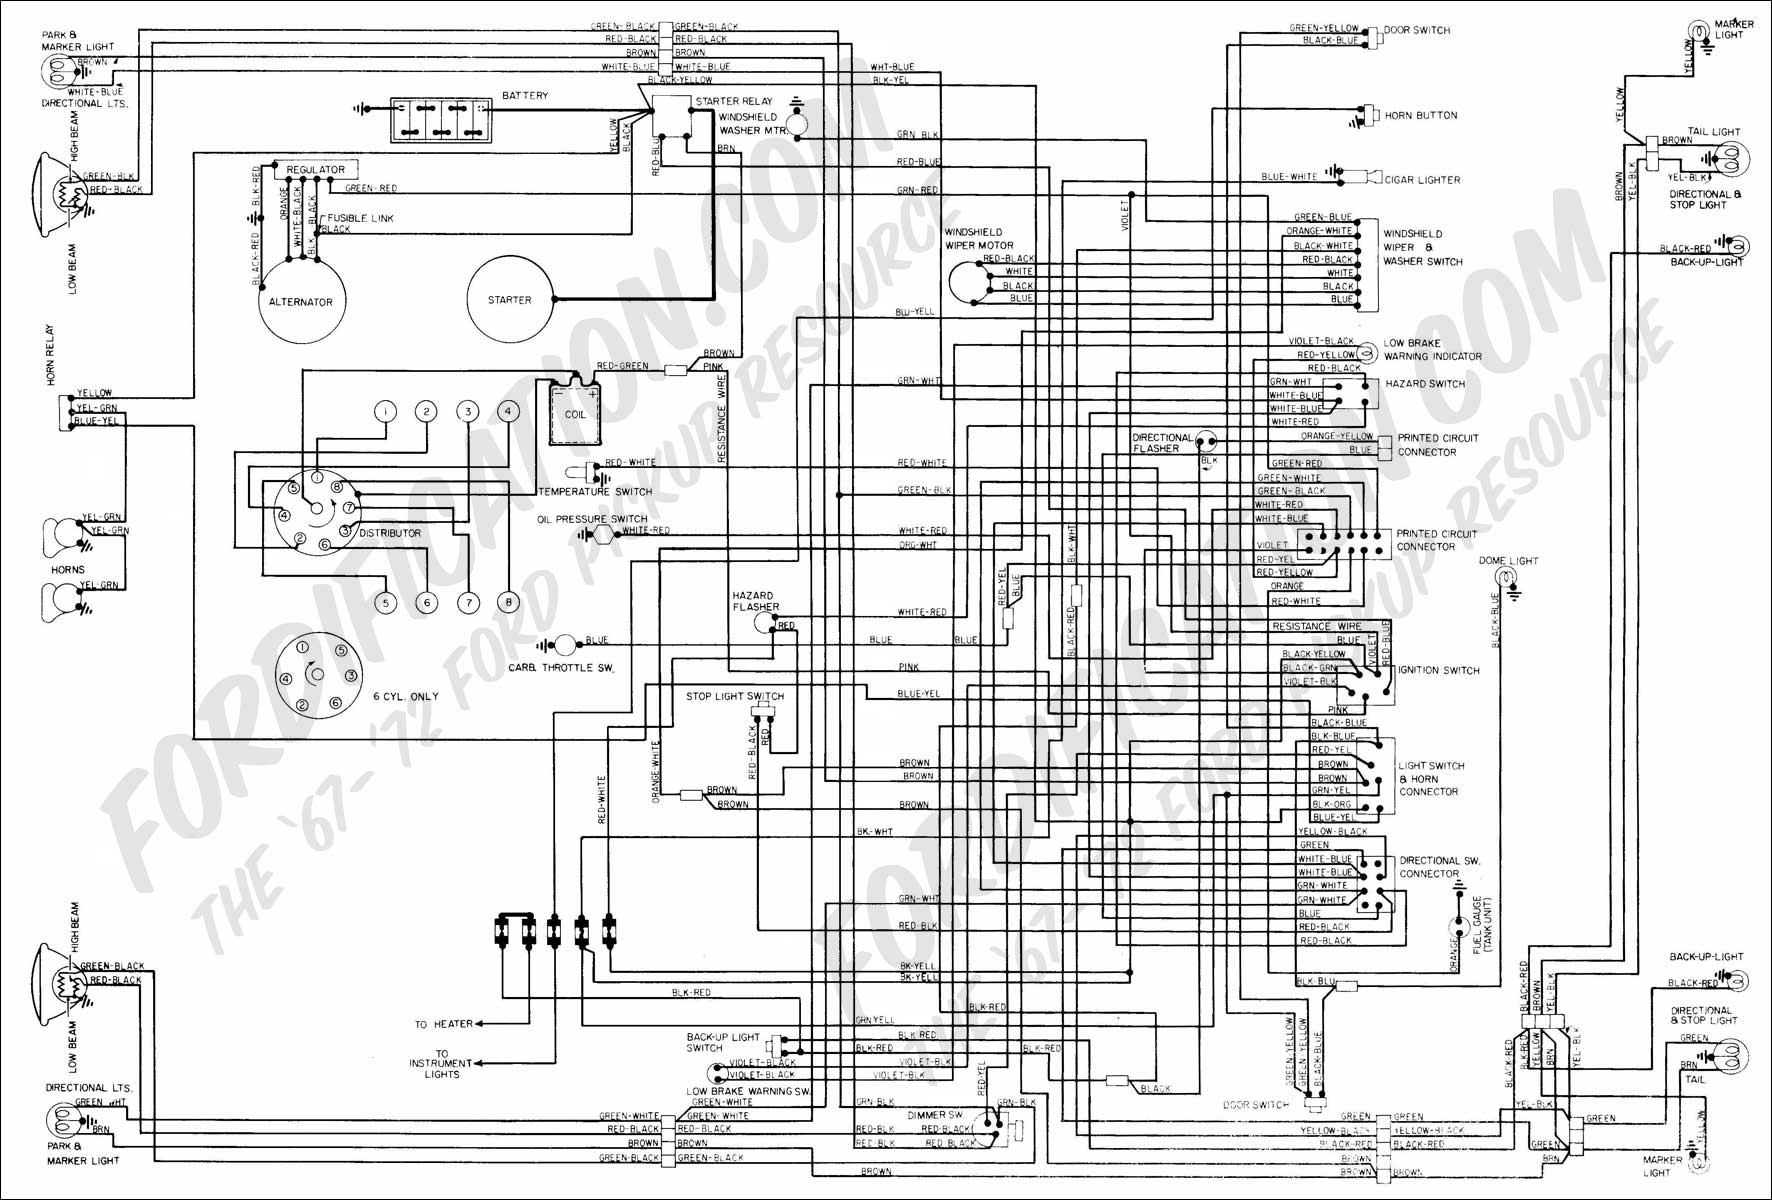 2006 ford focus wiring diagram electrical wiring diagram guide 2006 ford focus alternator wiring diagram 2006 ford focus wiring schematic wiring diagram table 2006 ford focus tail light wiring diagram 2006 ford focus wiring diagram